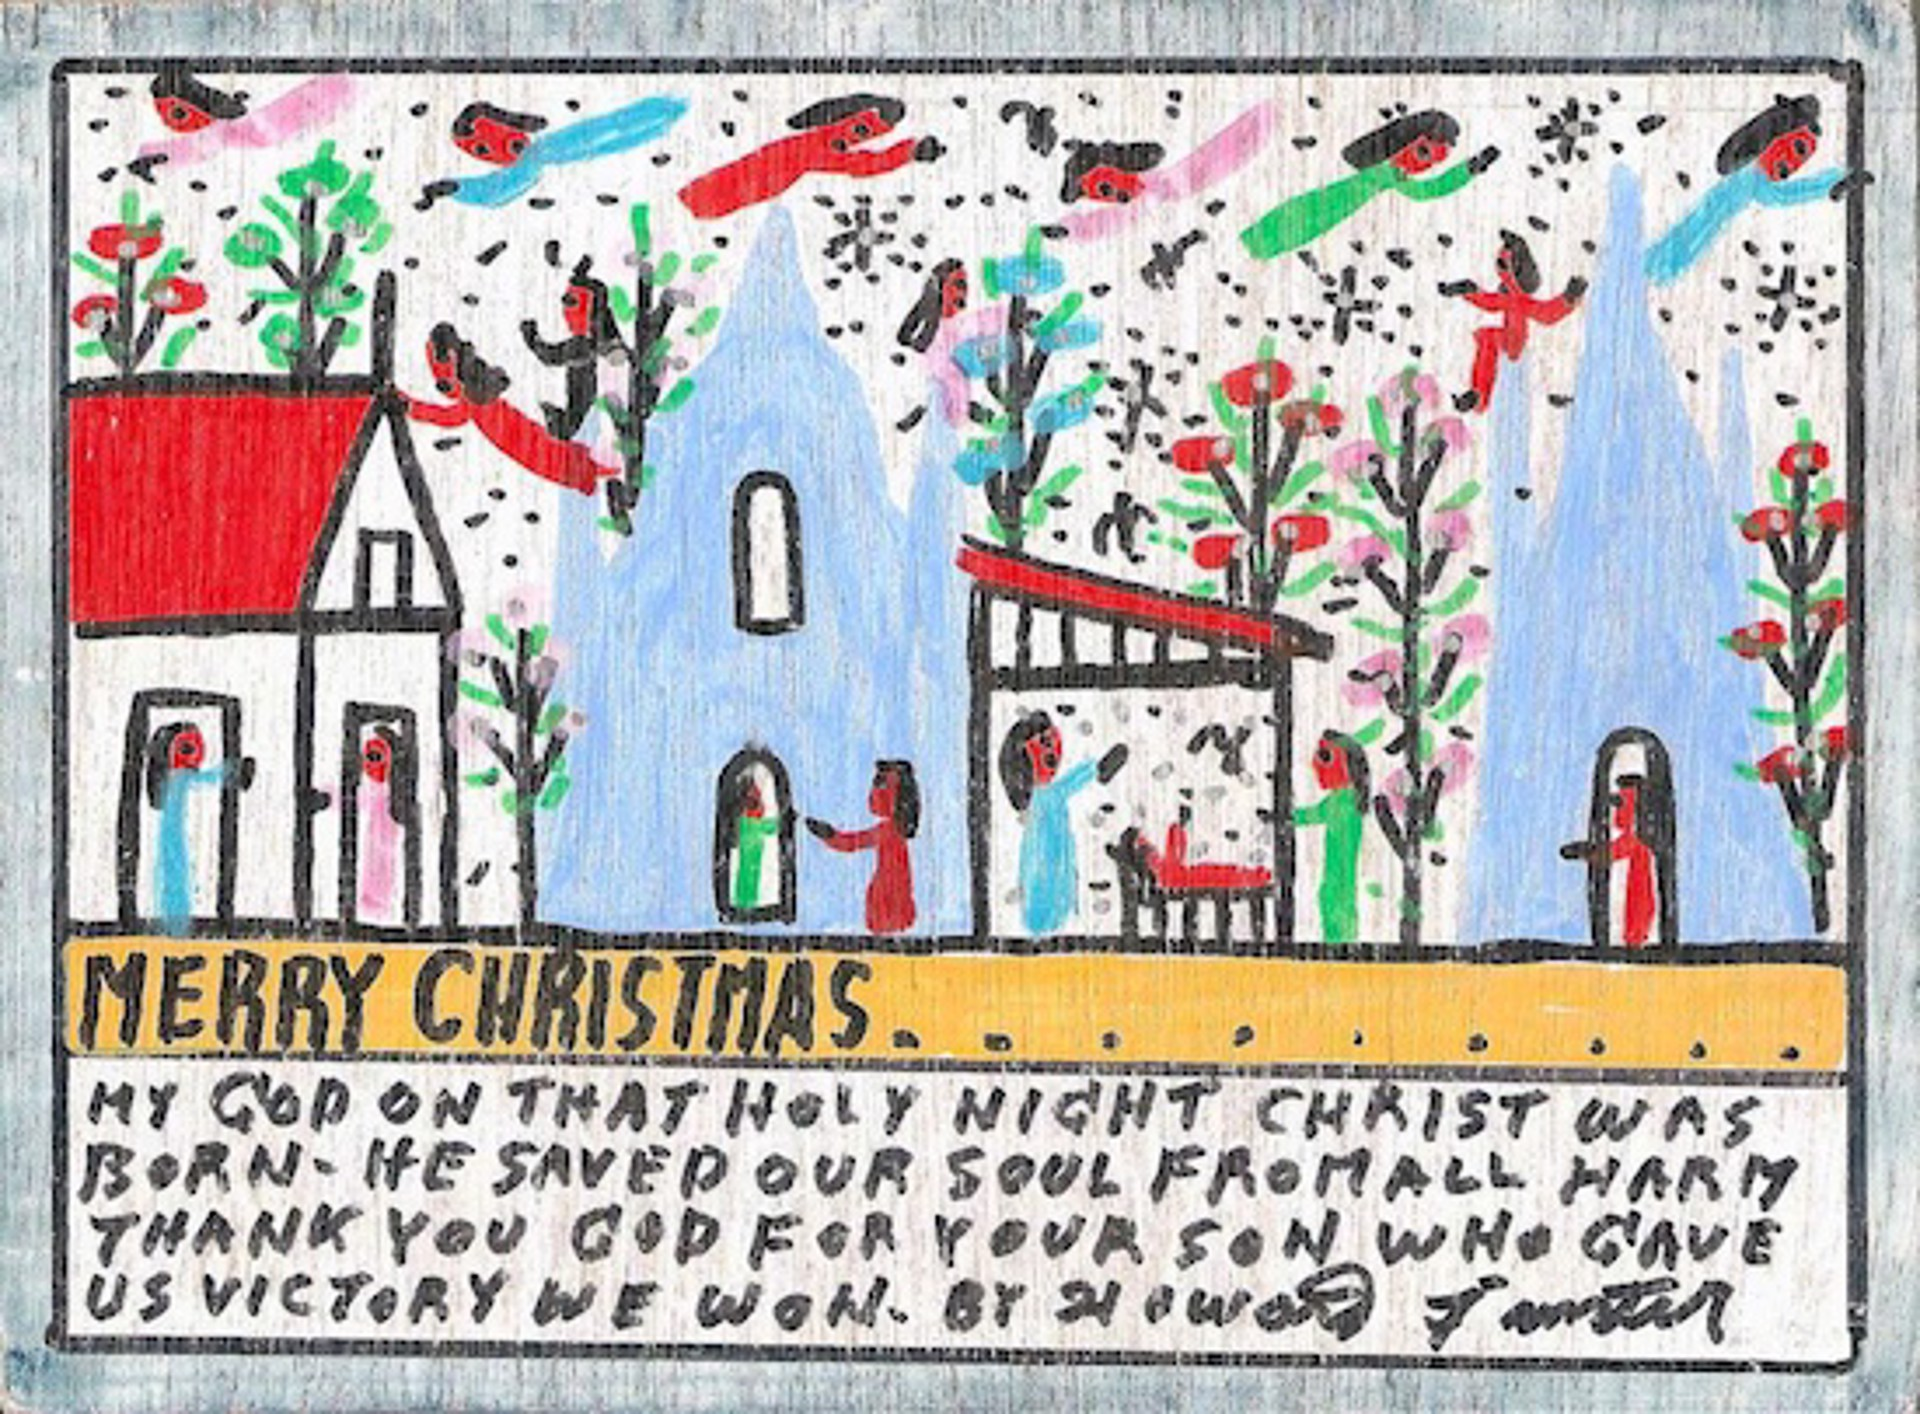 Merry Christmas by Howard Finster